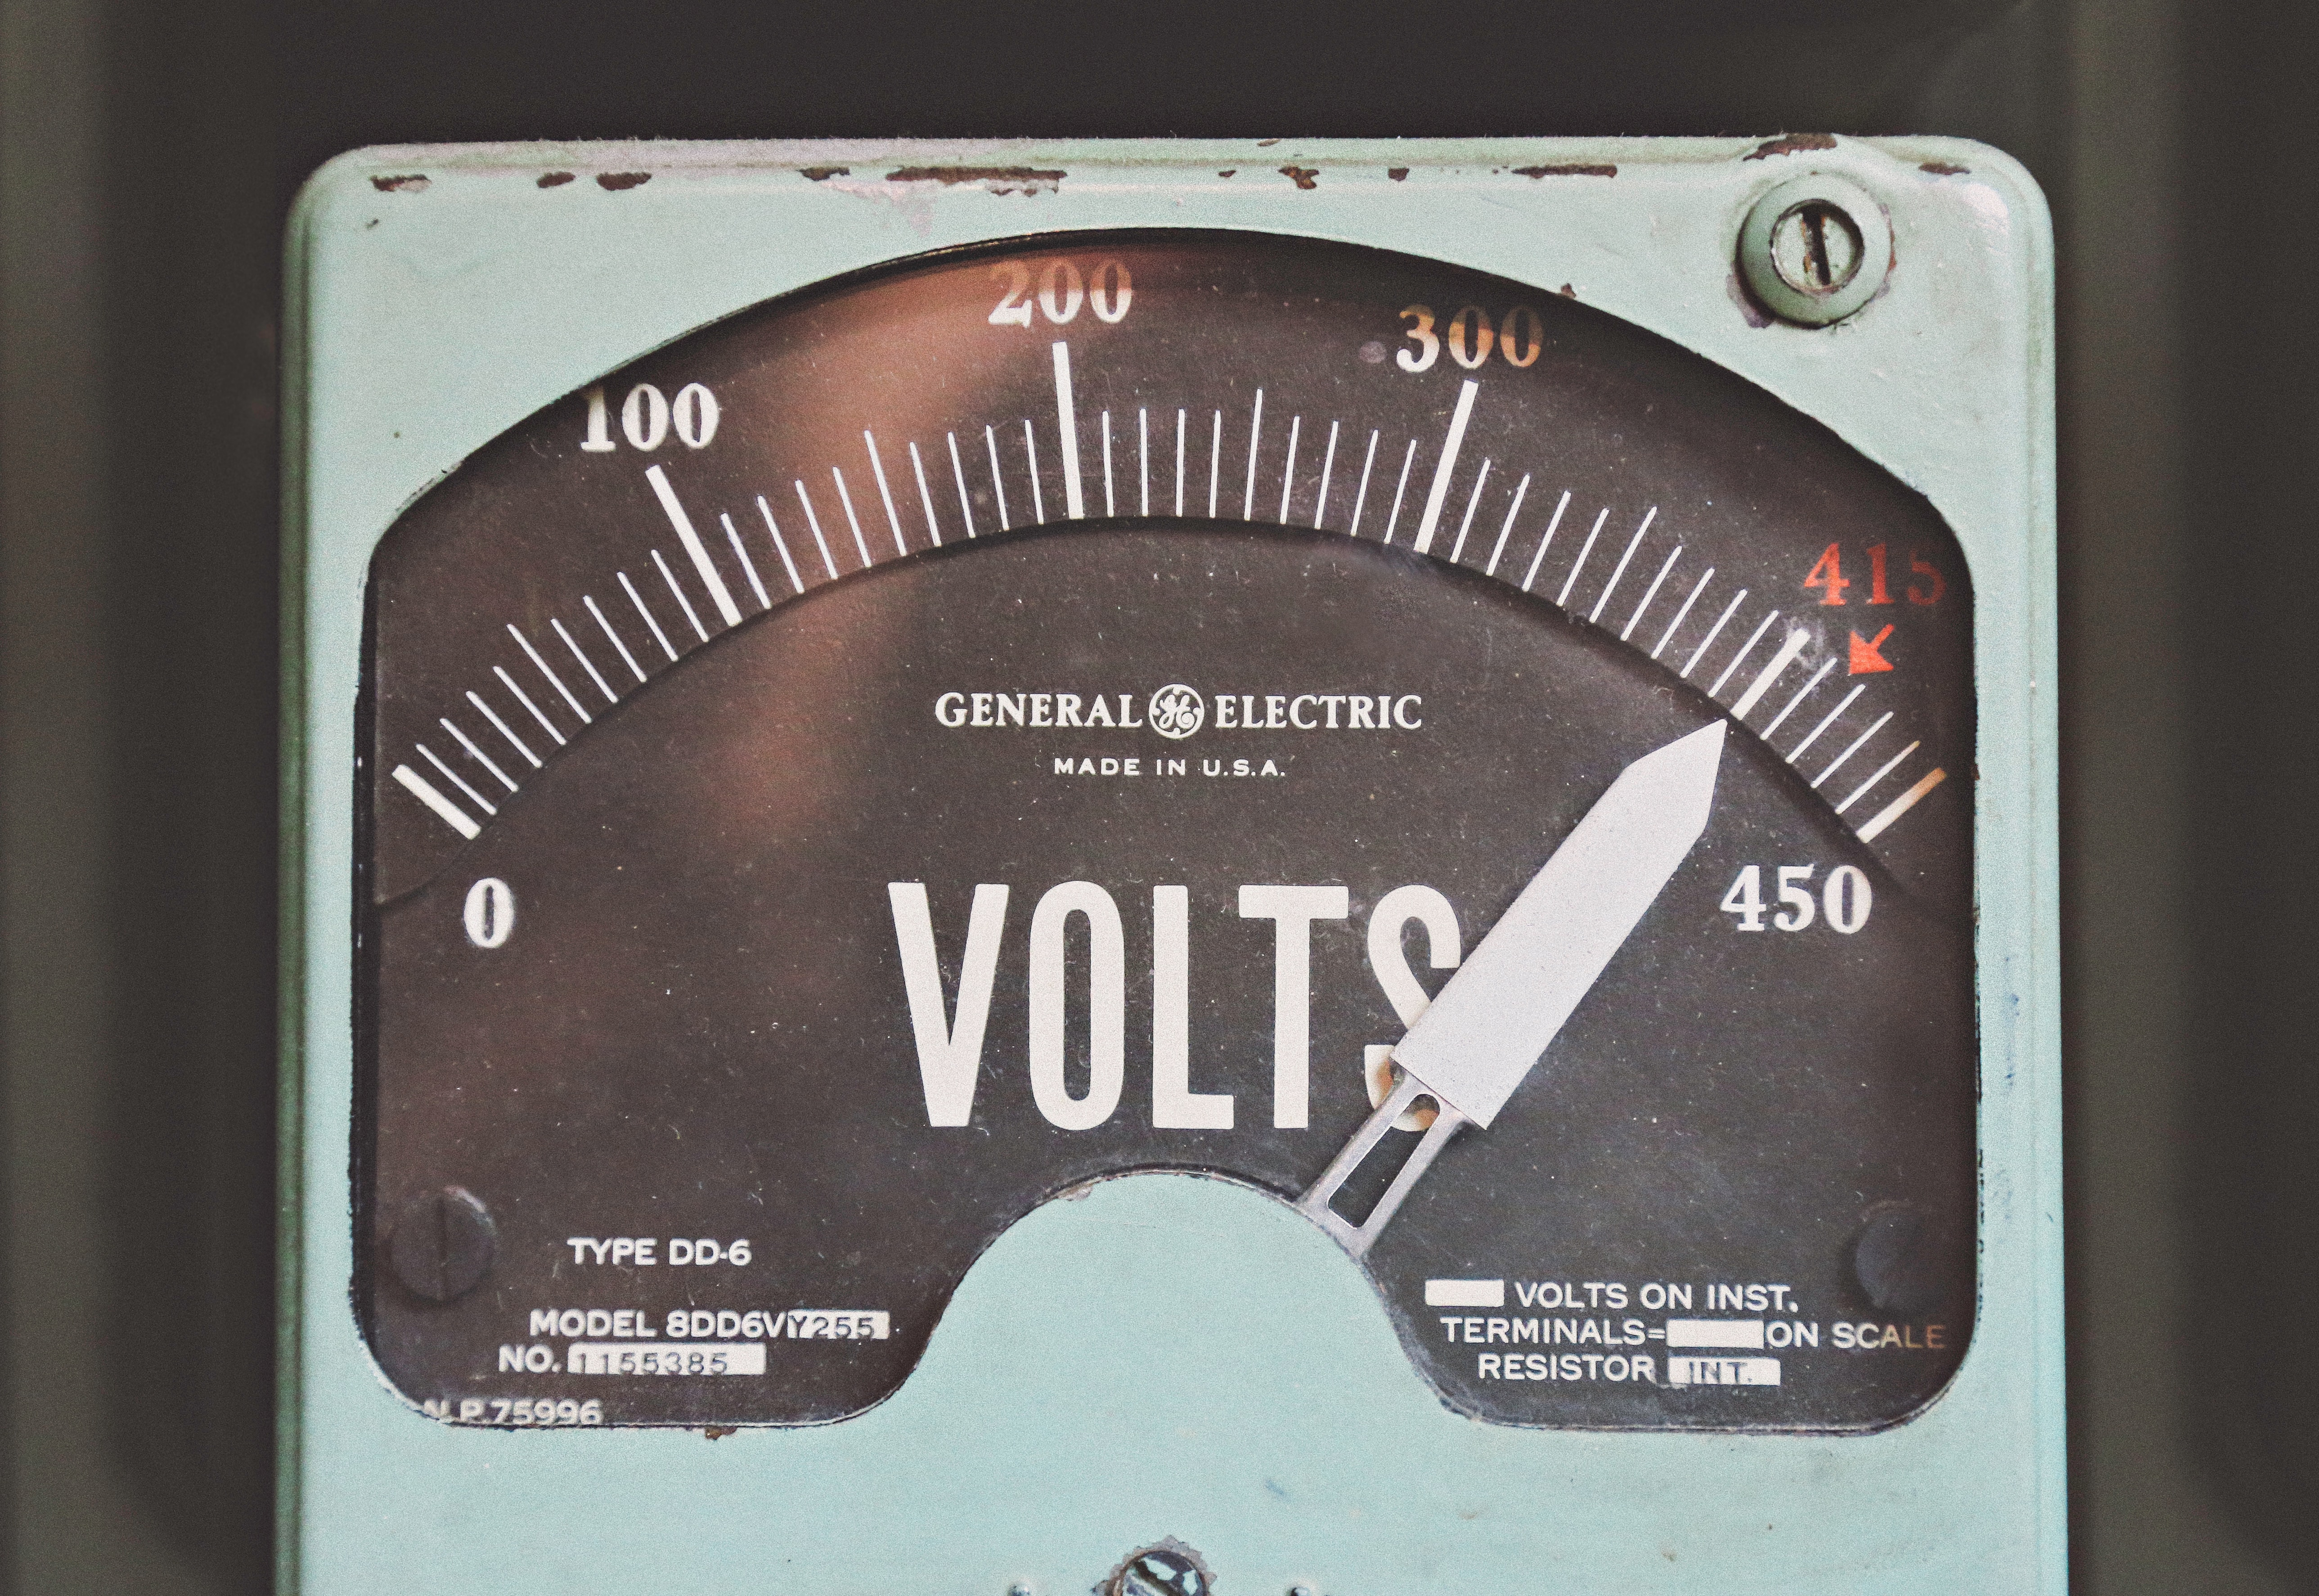 The Best Budget Multimeter for Electronics